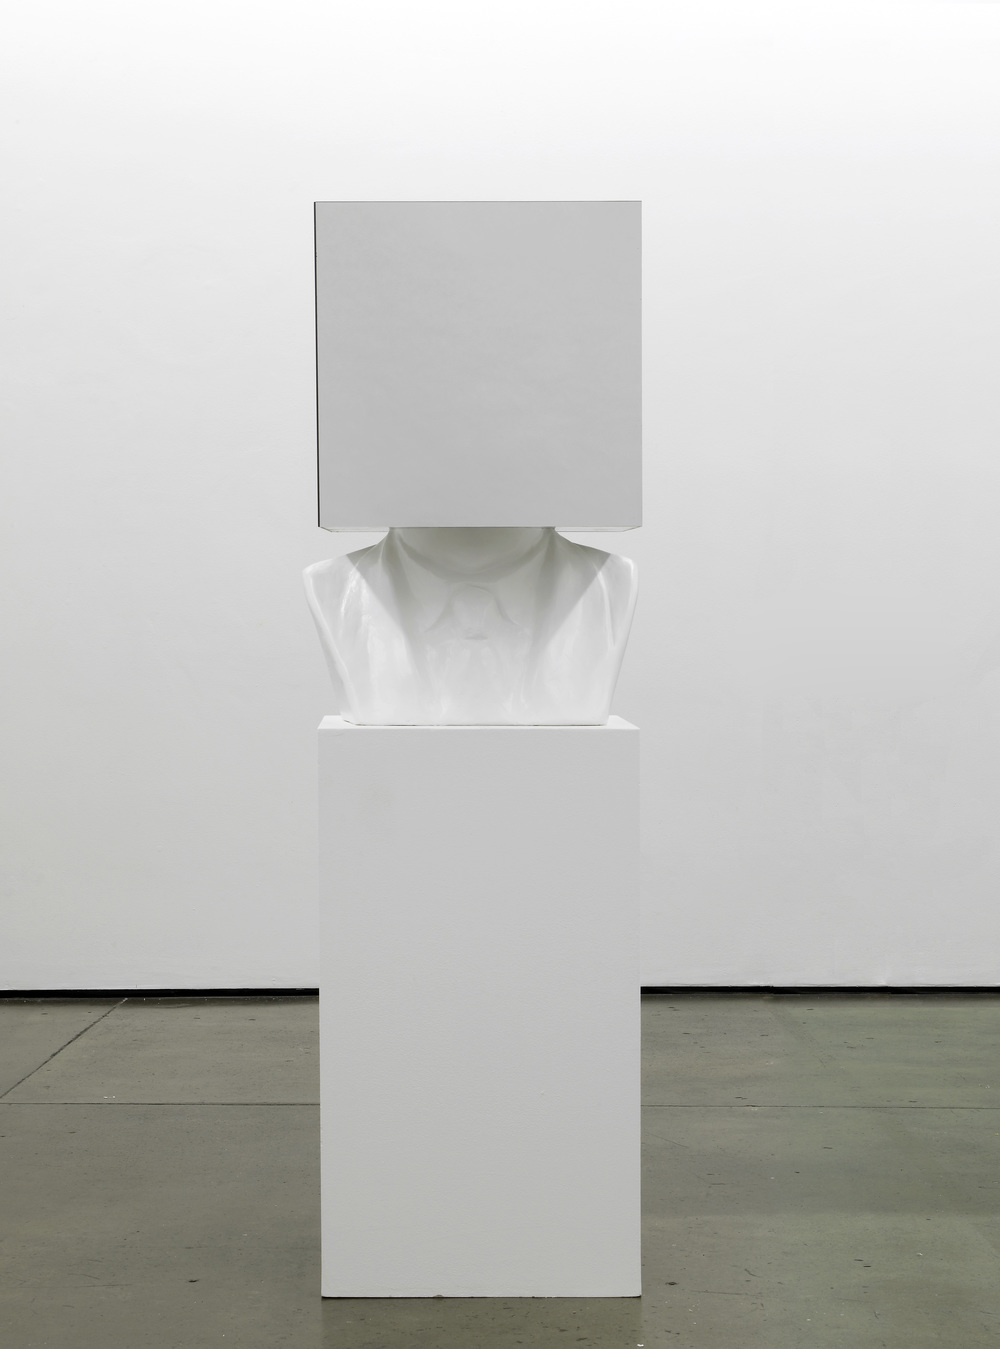 Sol LeWitt, Paragraphs on Conceptual Art, 1967  2012  Plaster bust, mirror, plinth 173 x 57 x 50 cm / 68 x 22.5 x 20 in